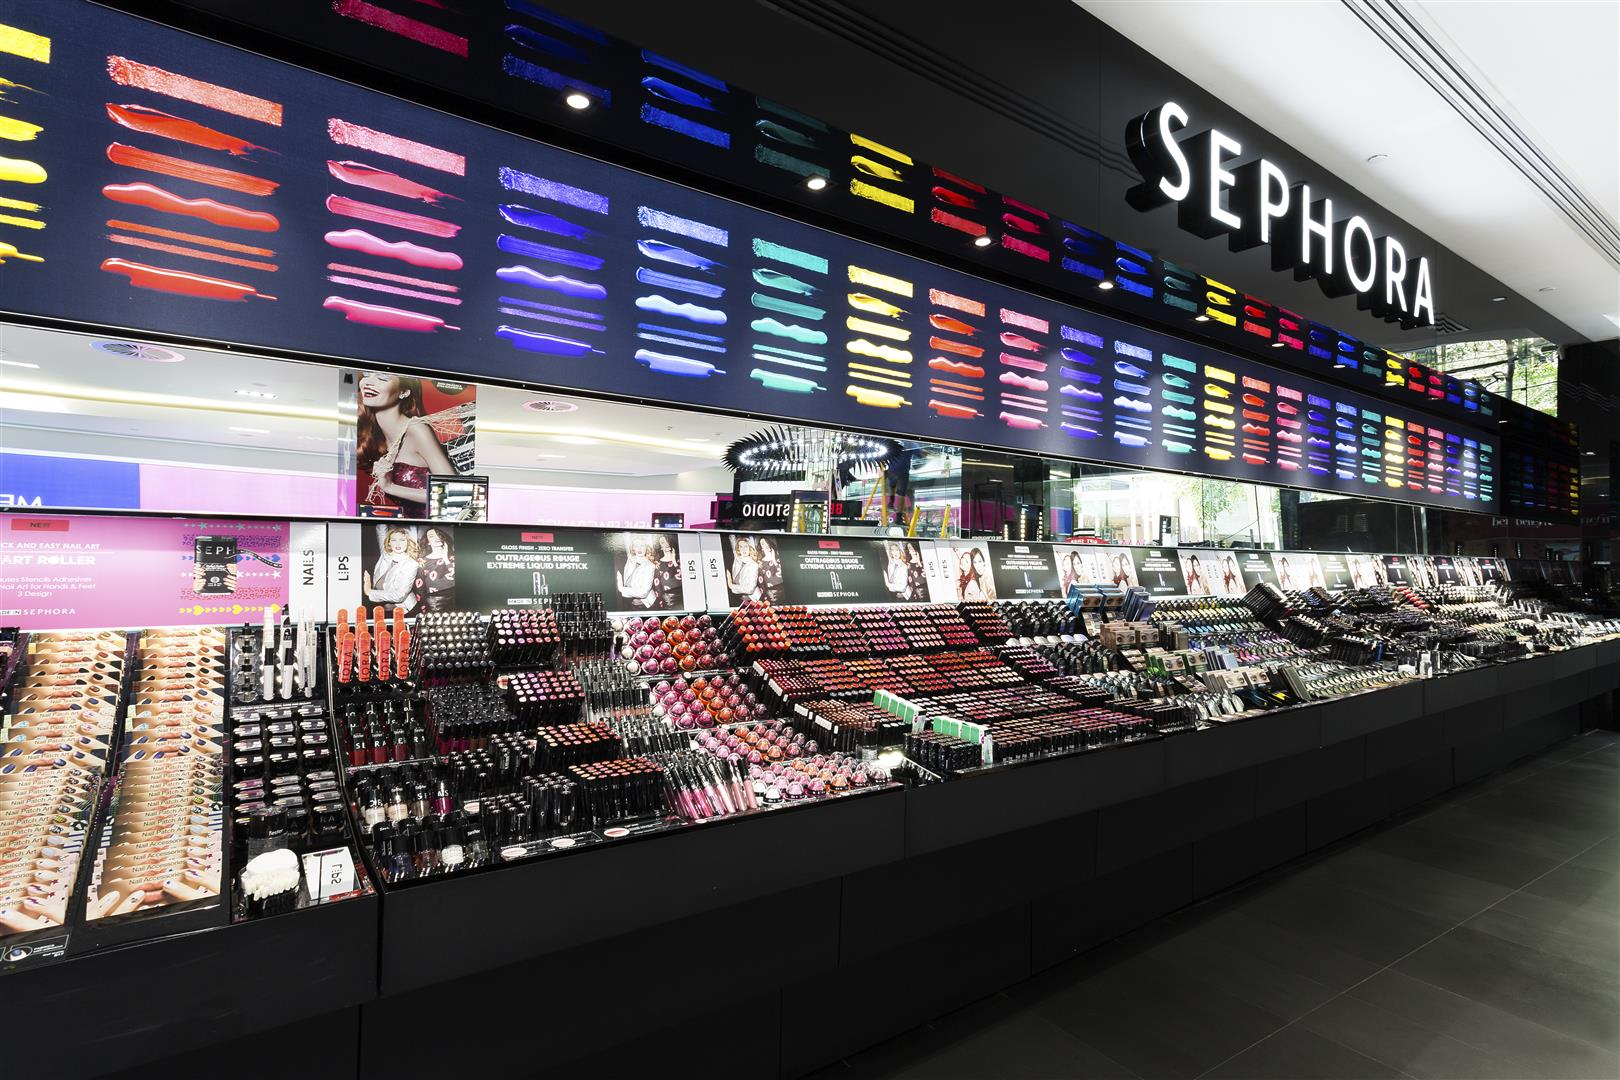 Complete coverage of Sephora Black Friday Ads & Sephora Black Friday deals info.